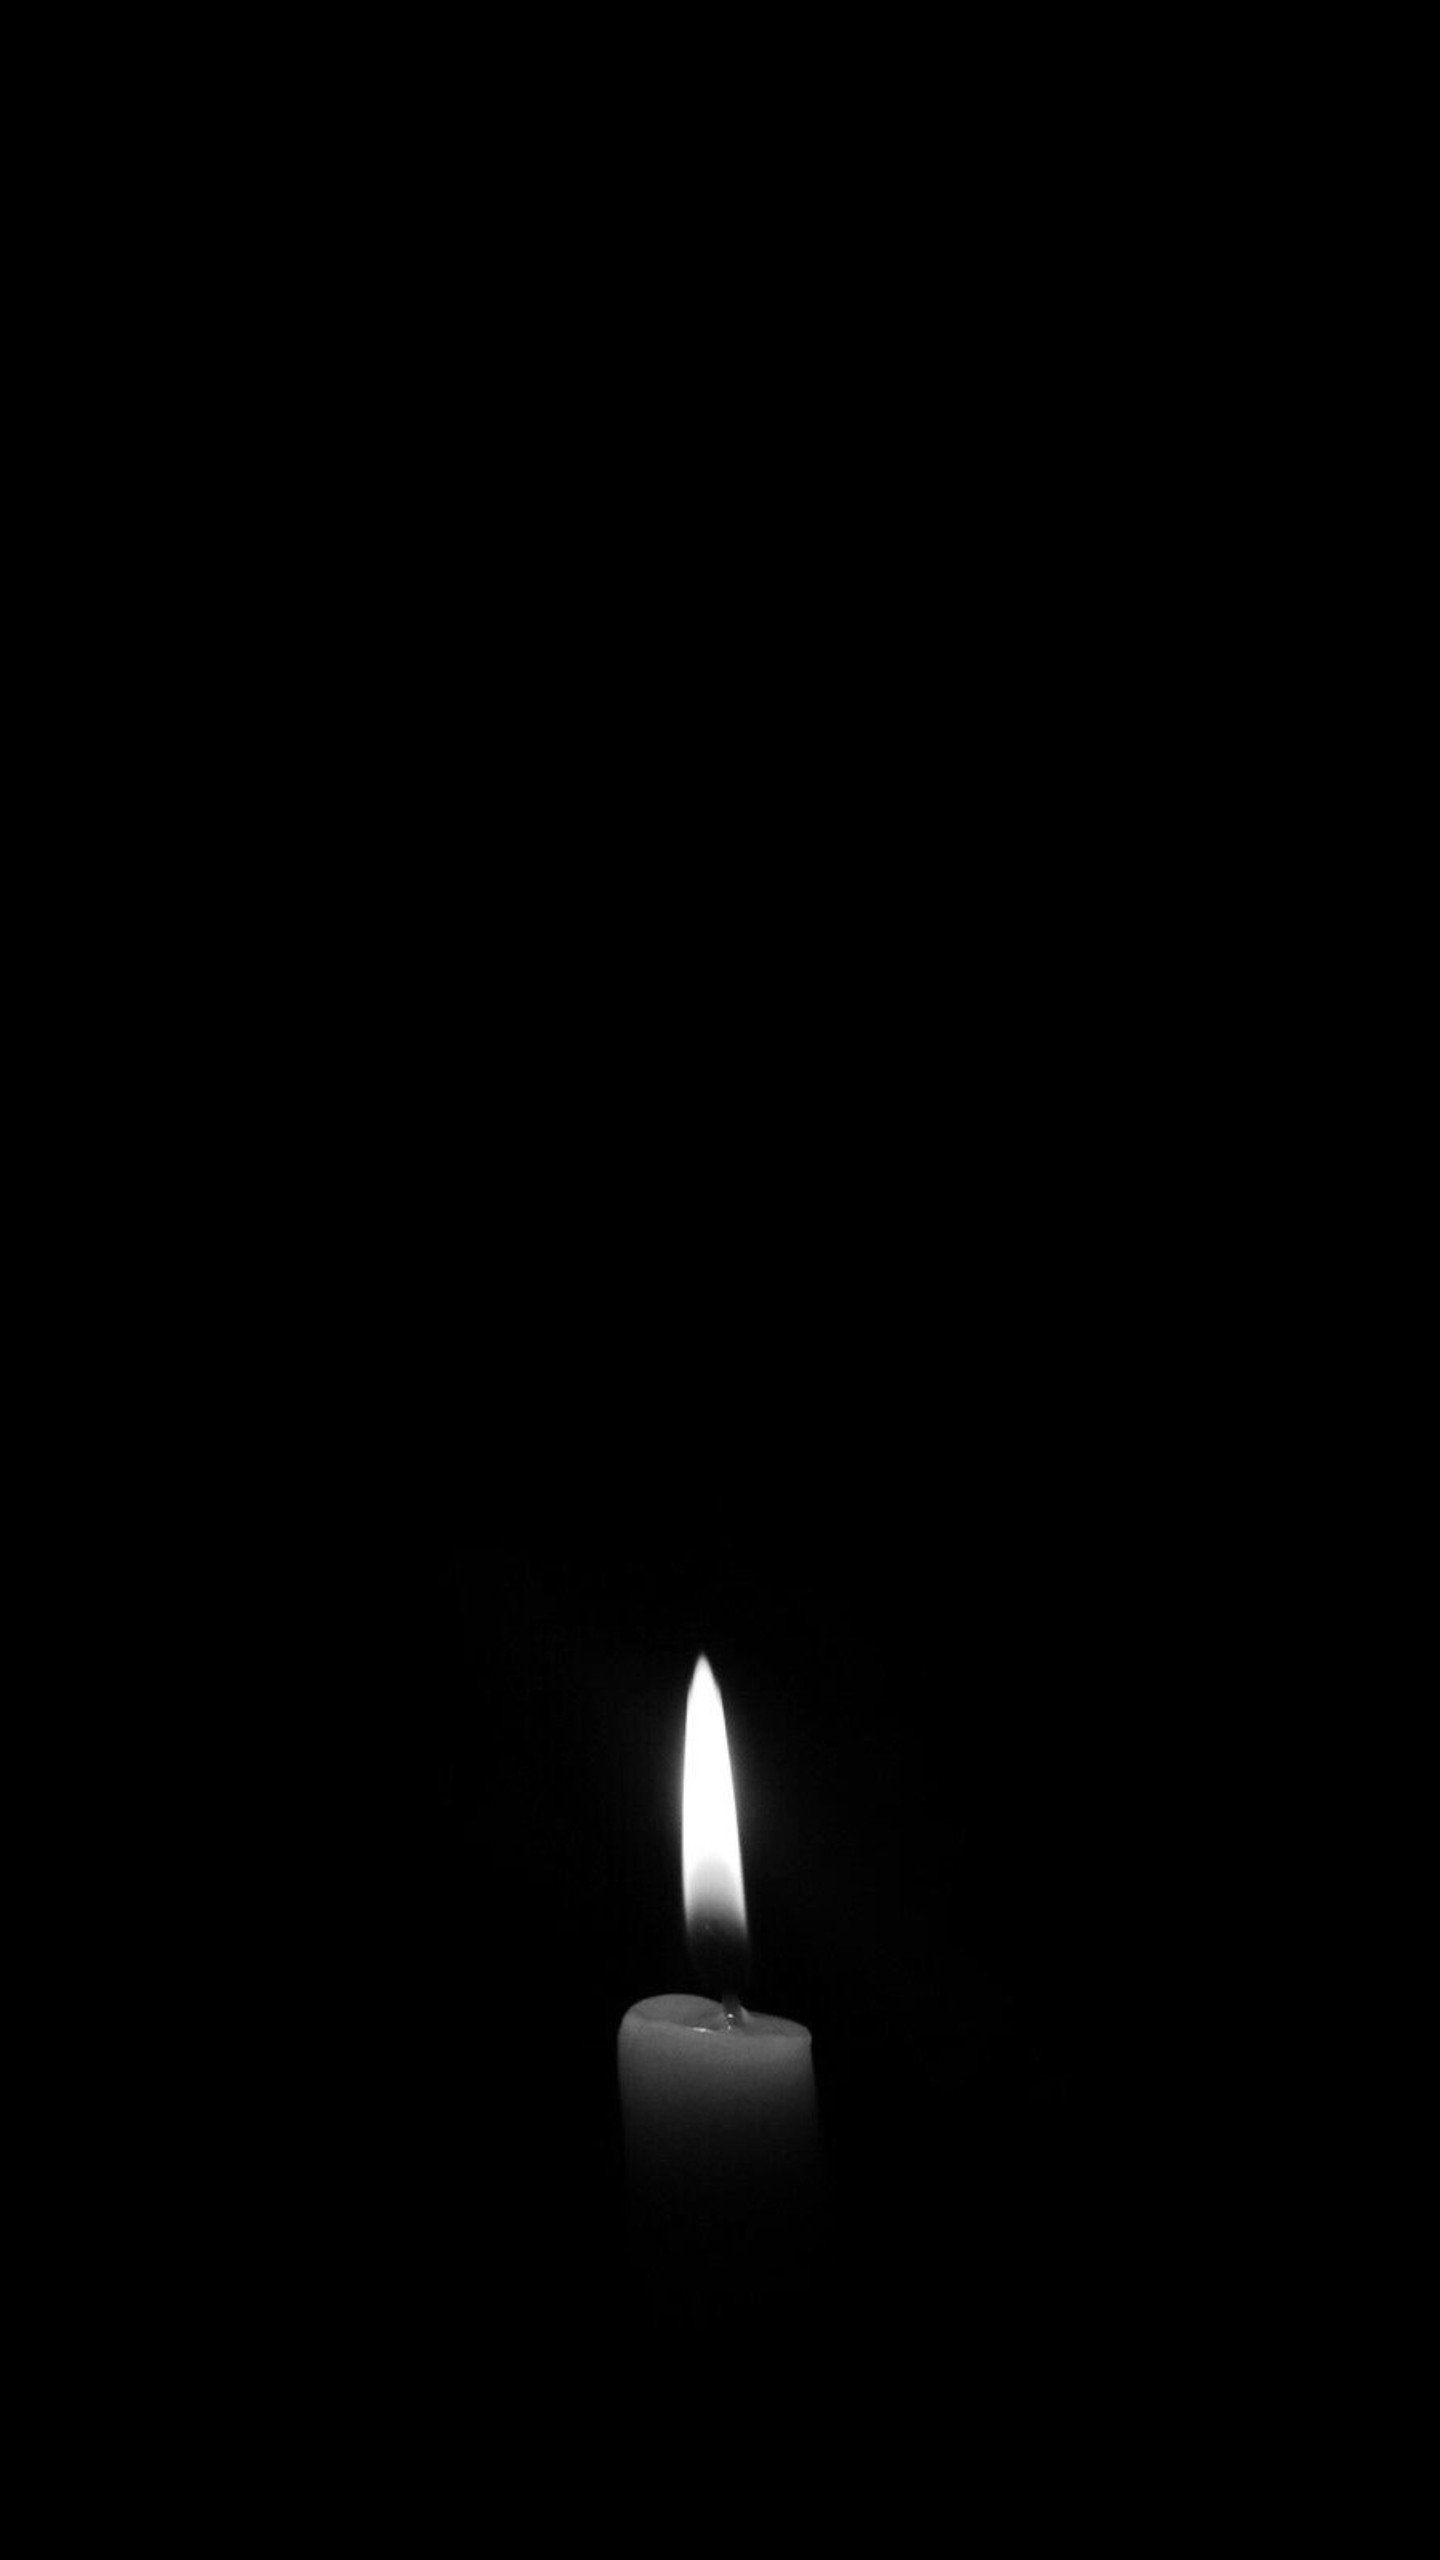 Candle Dark Monochrome Hd Photography Wallpapers Photos And Pictures Candles Wallpaper Black Background Wallpaper Photography Wallpaper